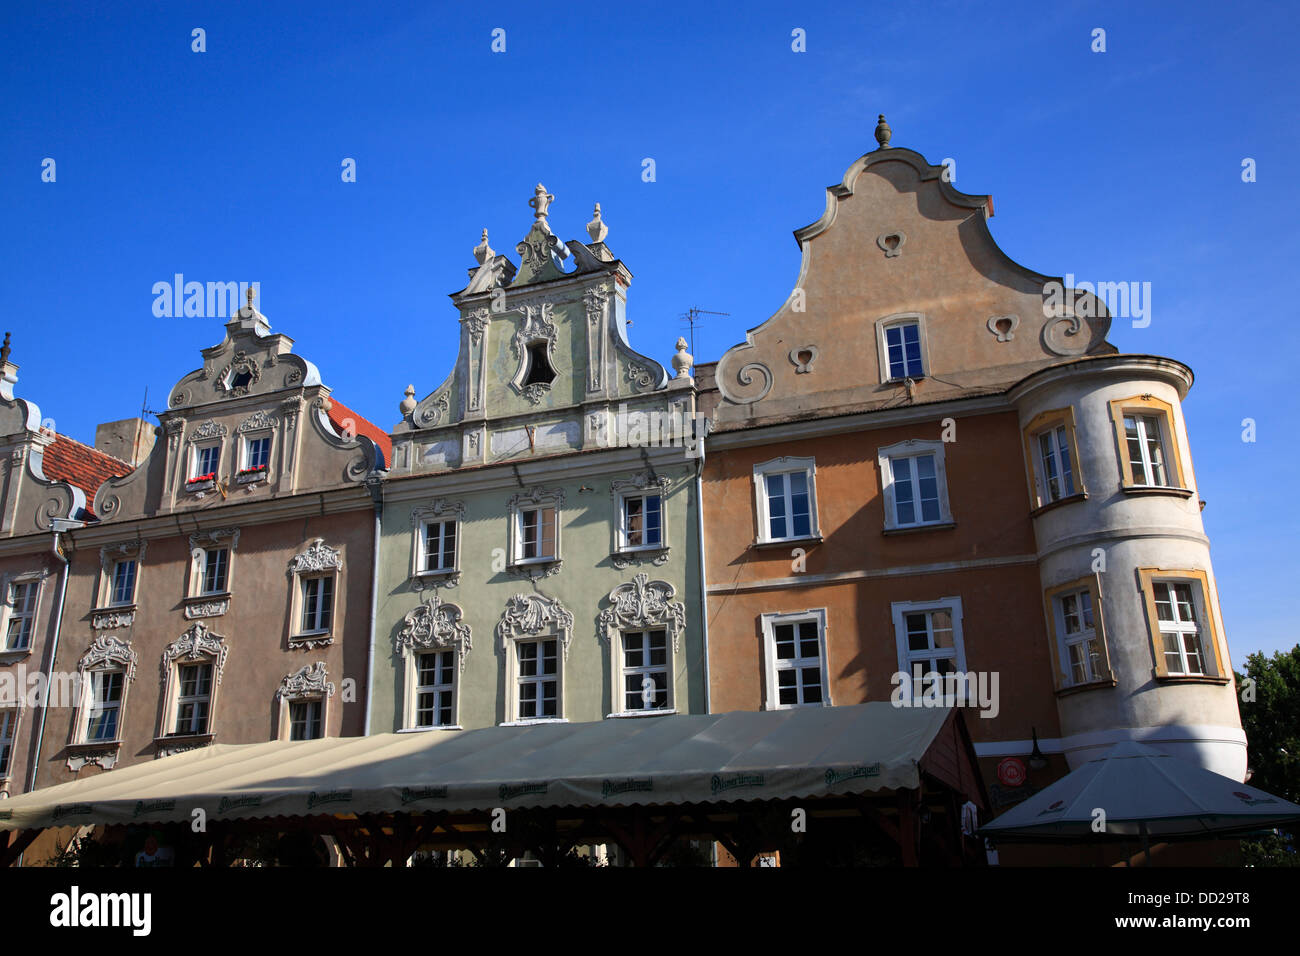 Outrageously Expensive Homes 2 Has 1788 Rooms And 257 Bathrooms in addition Soprema Entreprises Nouveau Pole Mere Enfant De Lhopital De Sedan 499 in addition 8580443 in addition 5913340863 as well Stock Photo Houses At Rynek Opole Silesia Poland 59673272. on 10